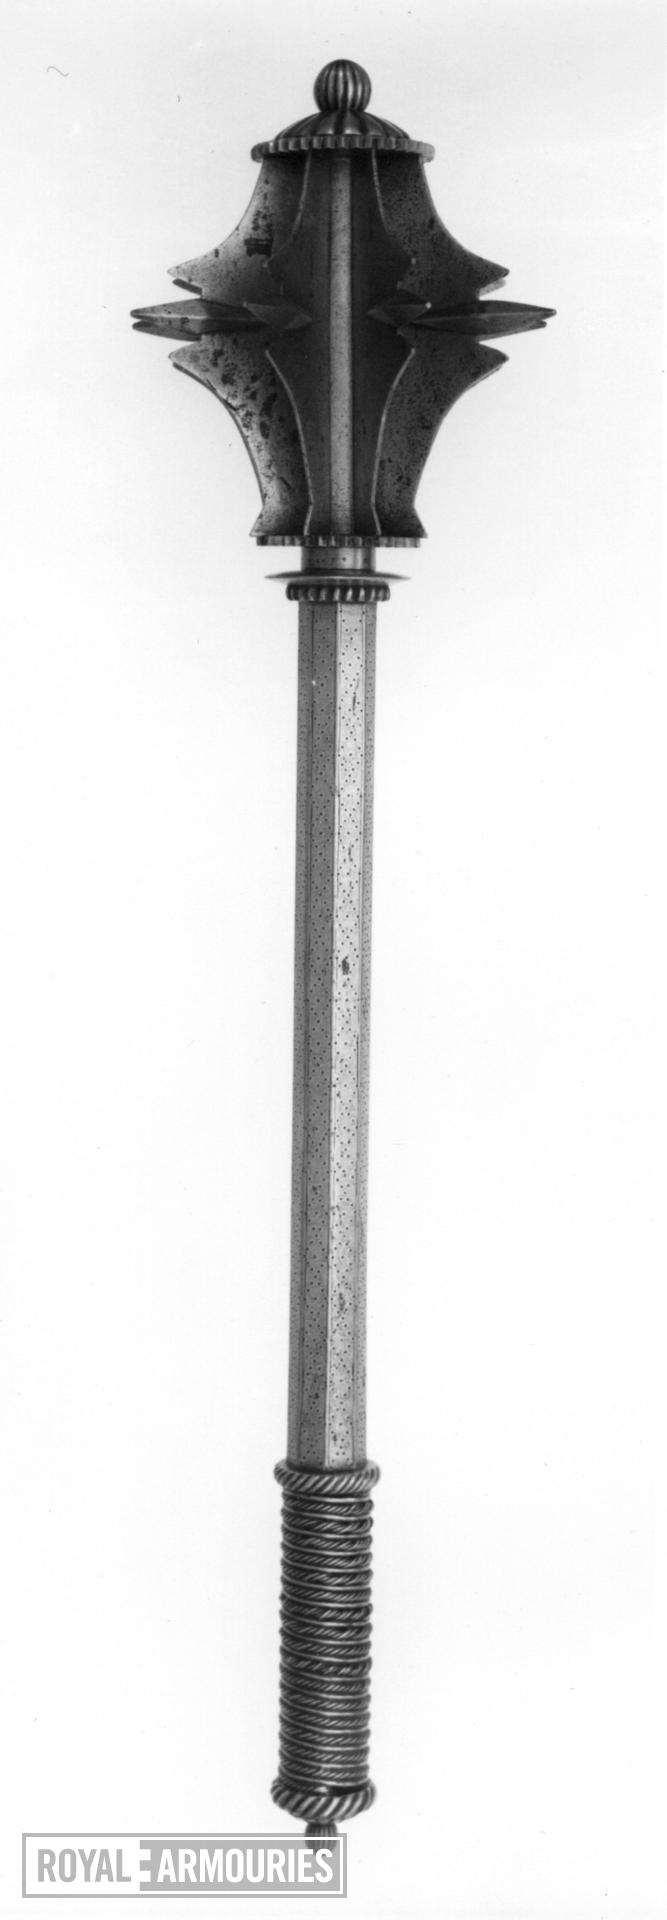 Mace Mace in the style of the 16th century